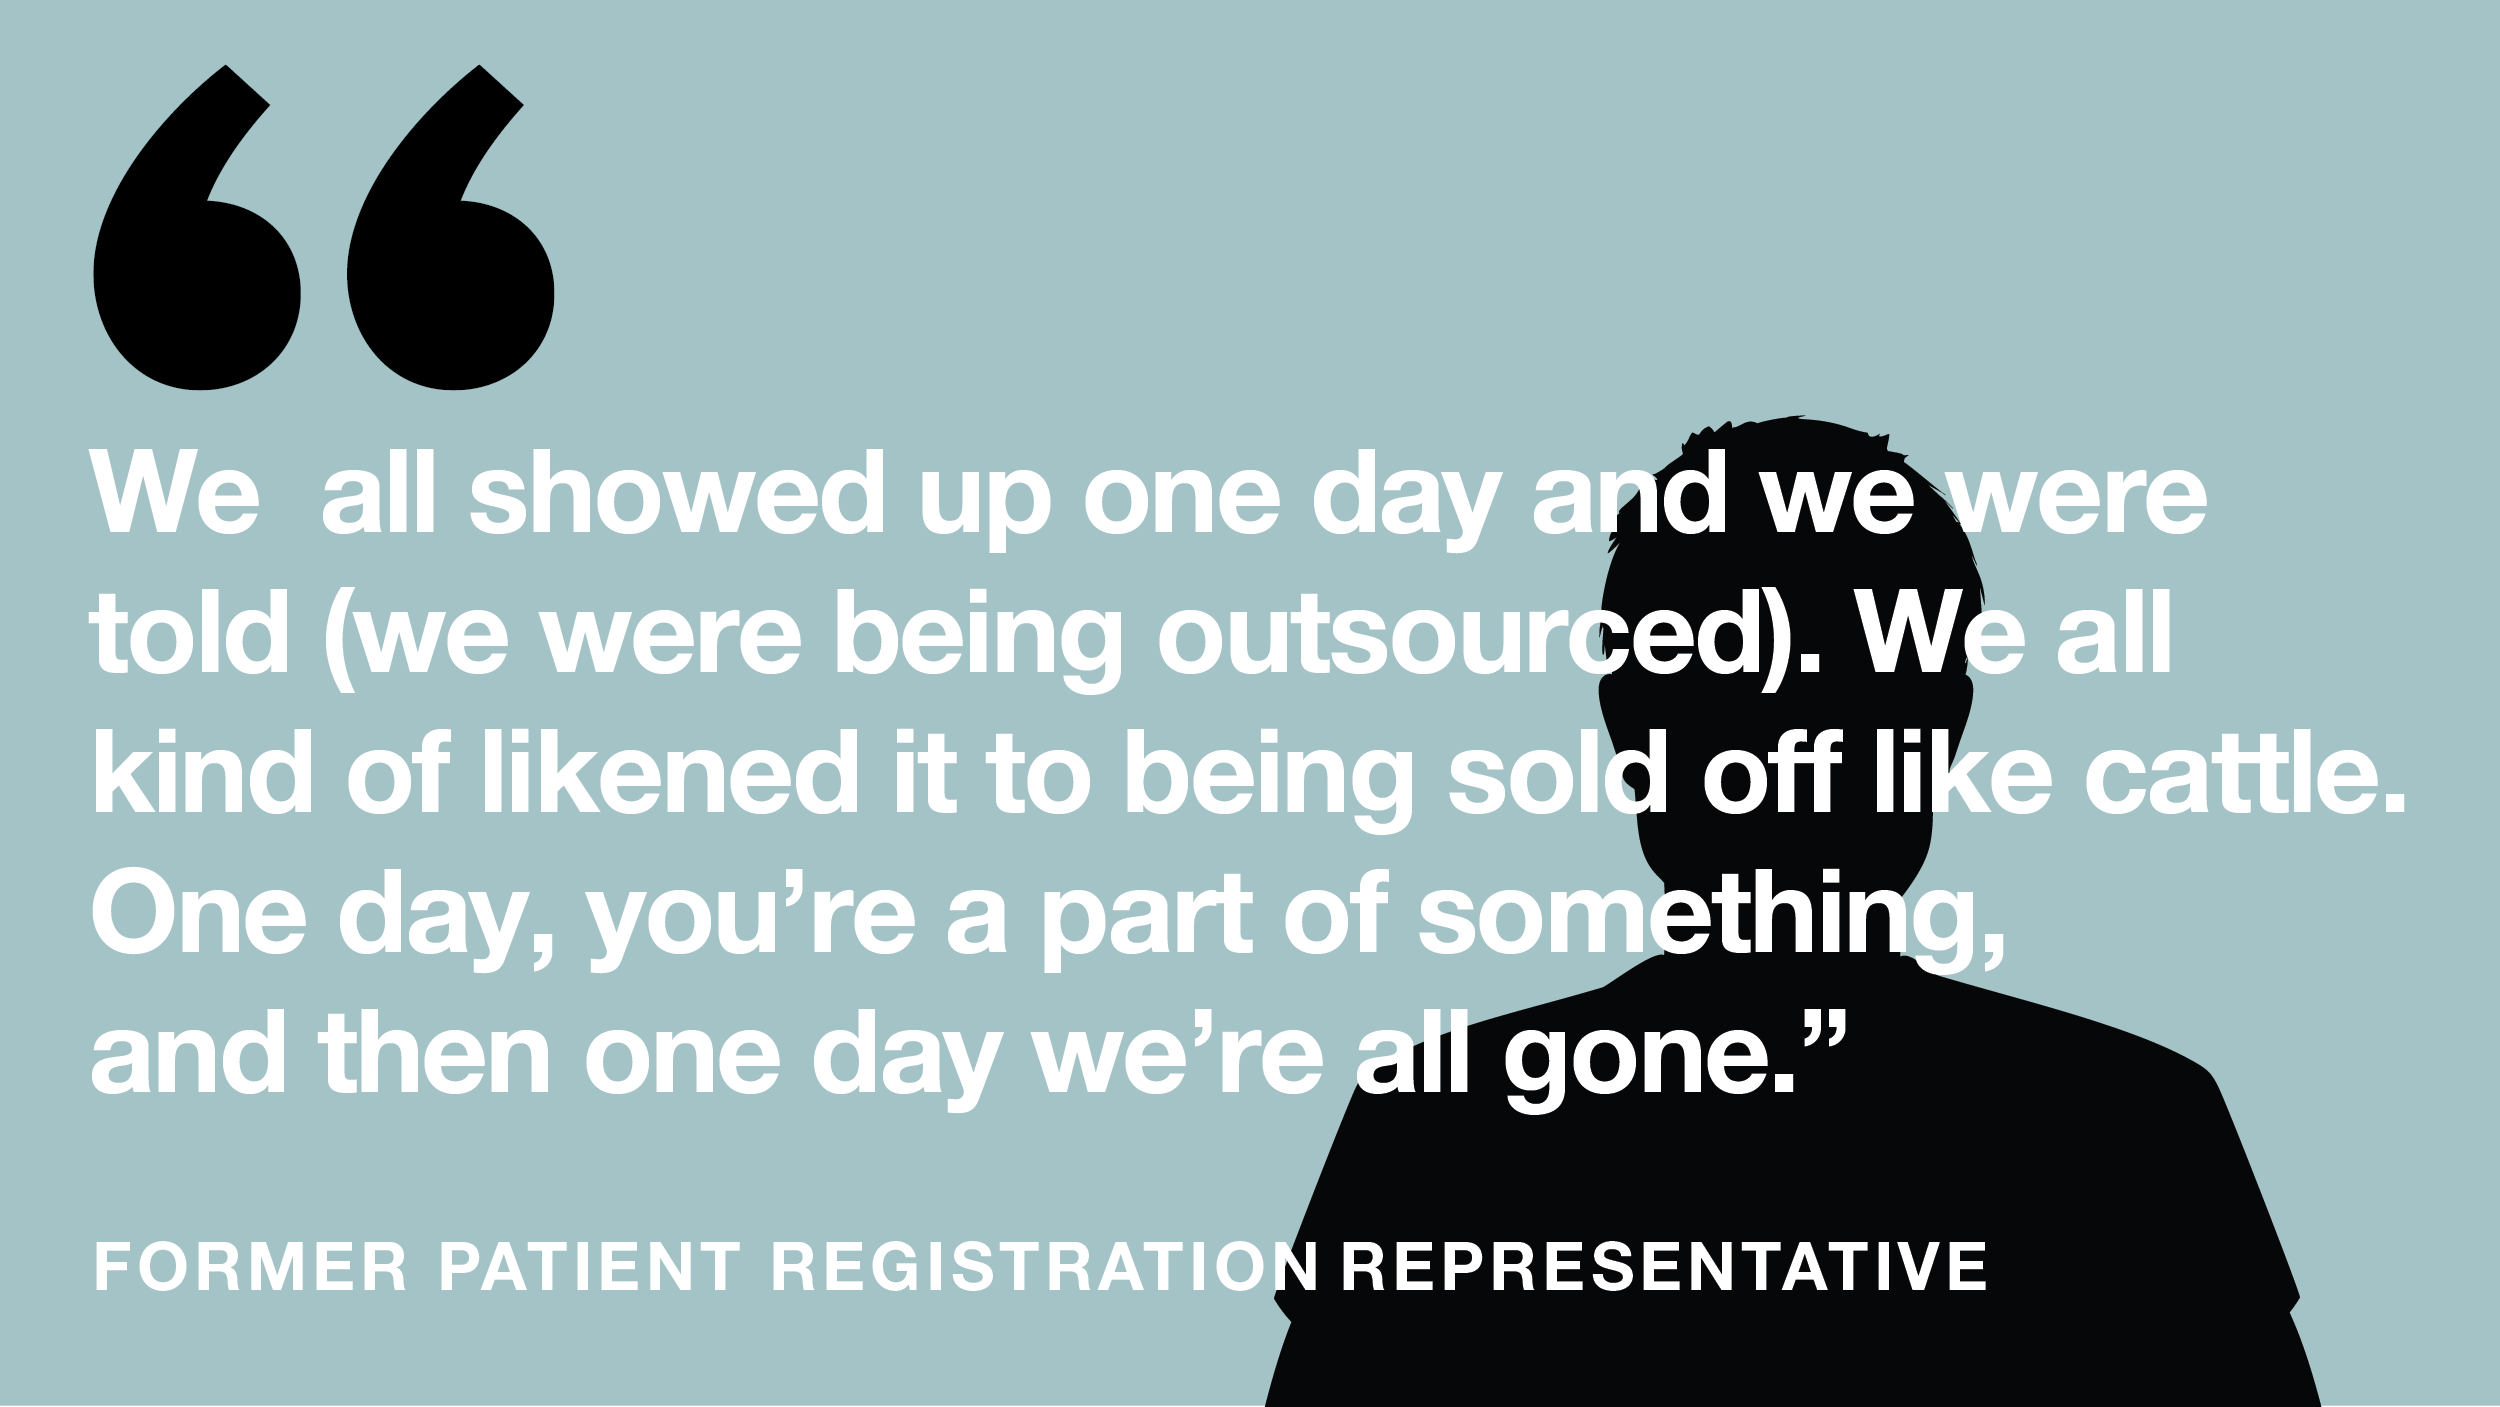 'We all showed up one day and we were told (we were being outsourced). We all kind of likened it to being sold off like cattle. One day, you're a part of something, and then one day we're all gone.' --Former patient registration representative